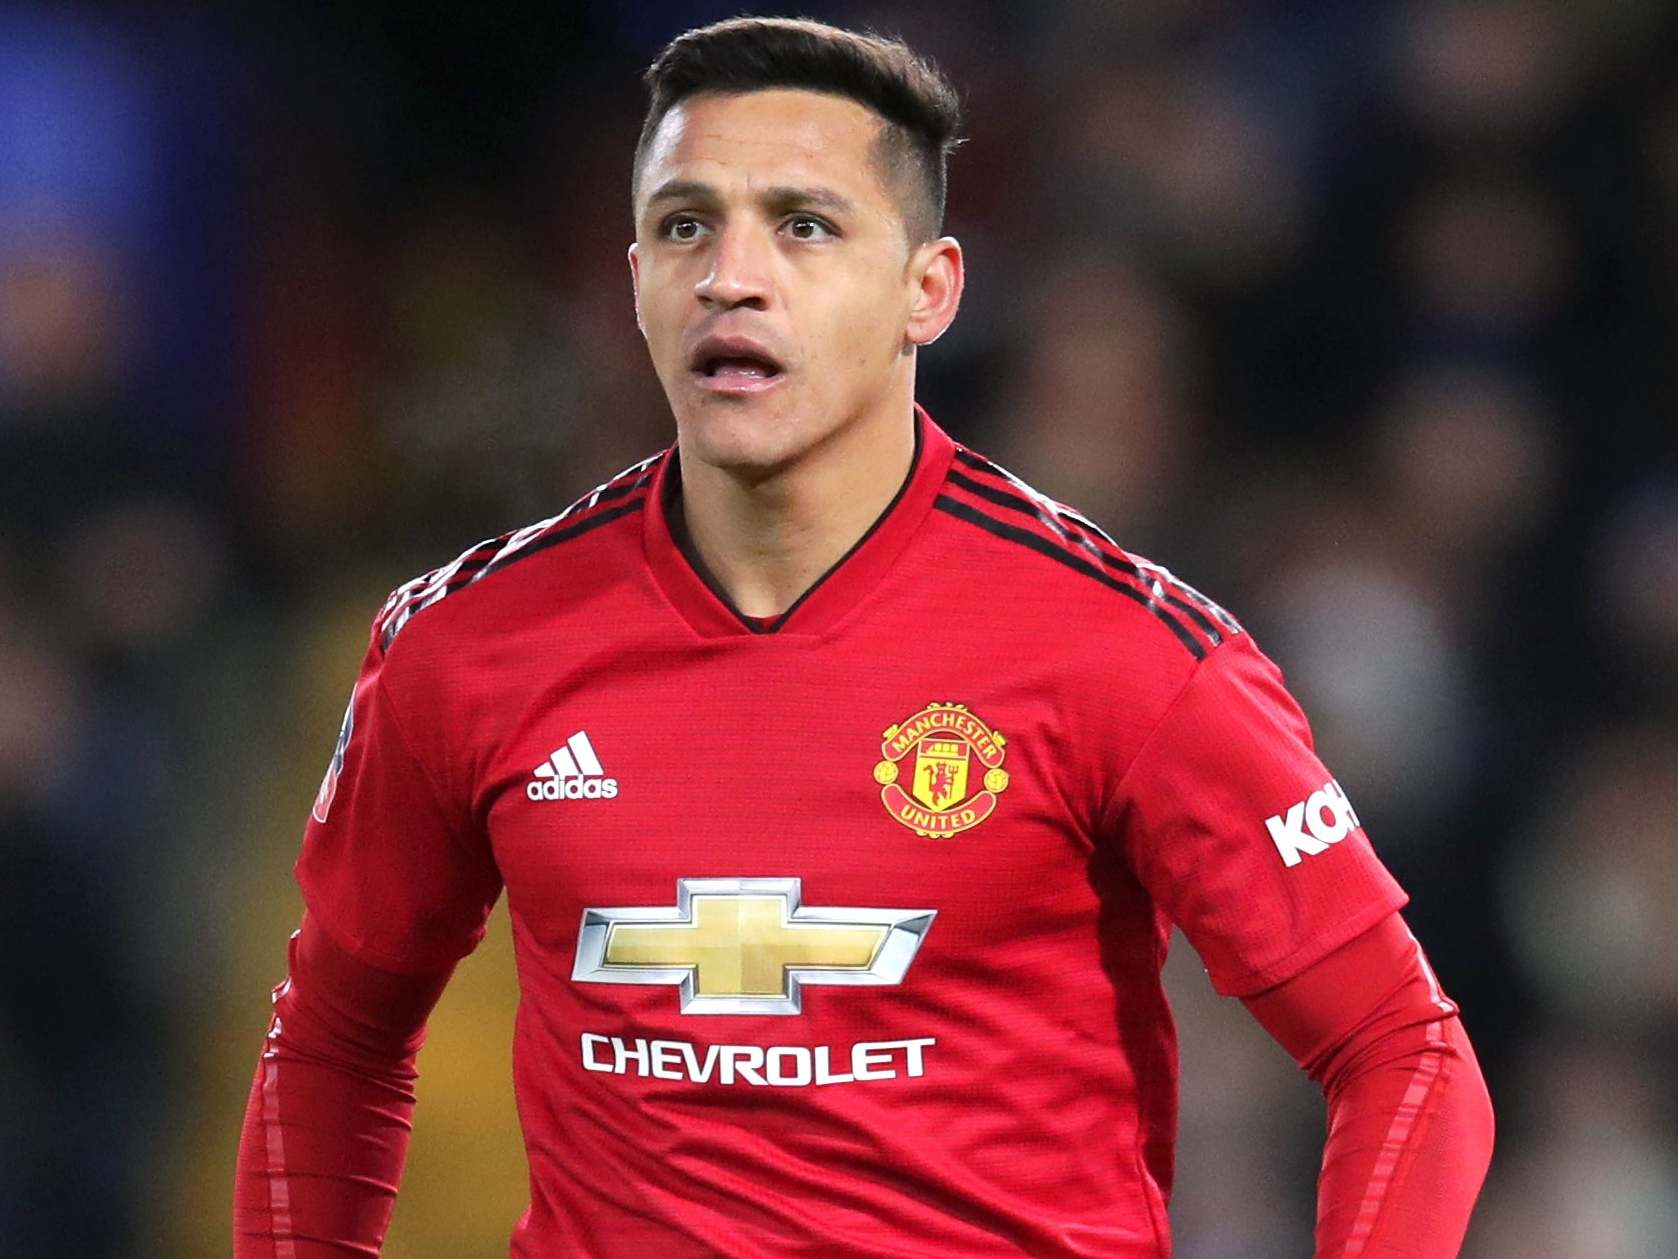 Manchester United transfer news: Alexis Sanchez could leave for Inter in next few days, says Ole Gunnar Solskjaer